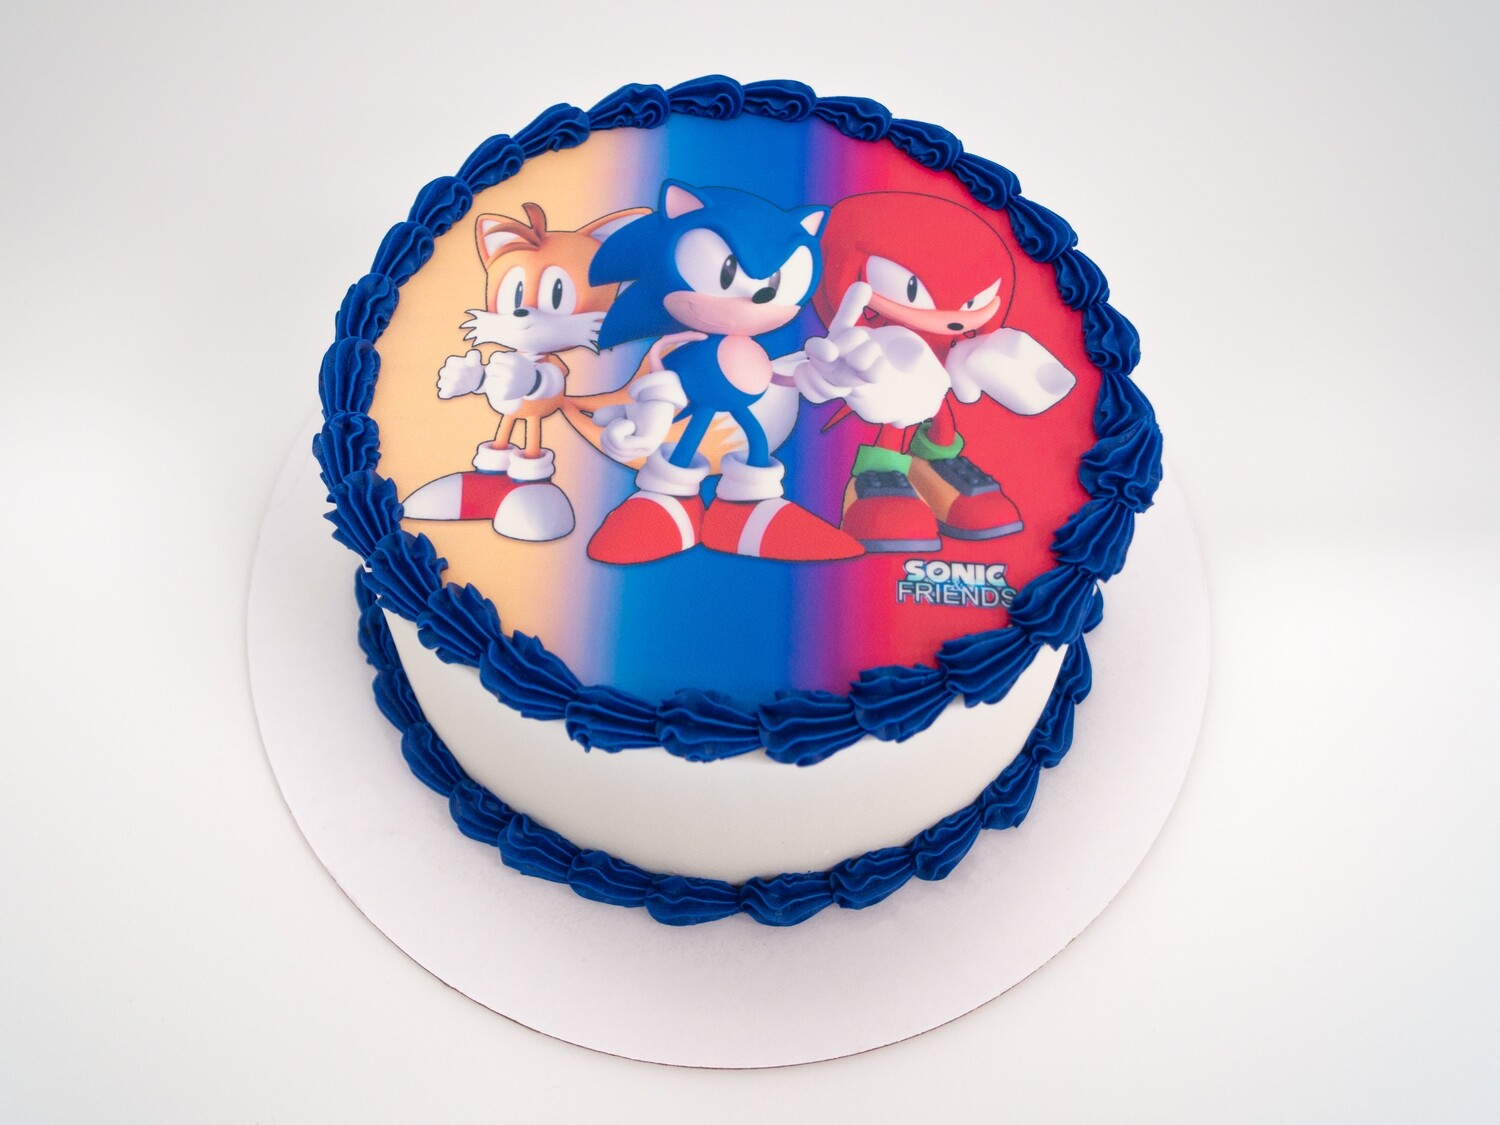 Sonic and Friends Image Cake